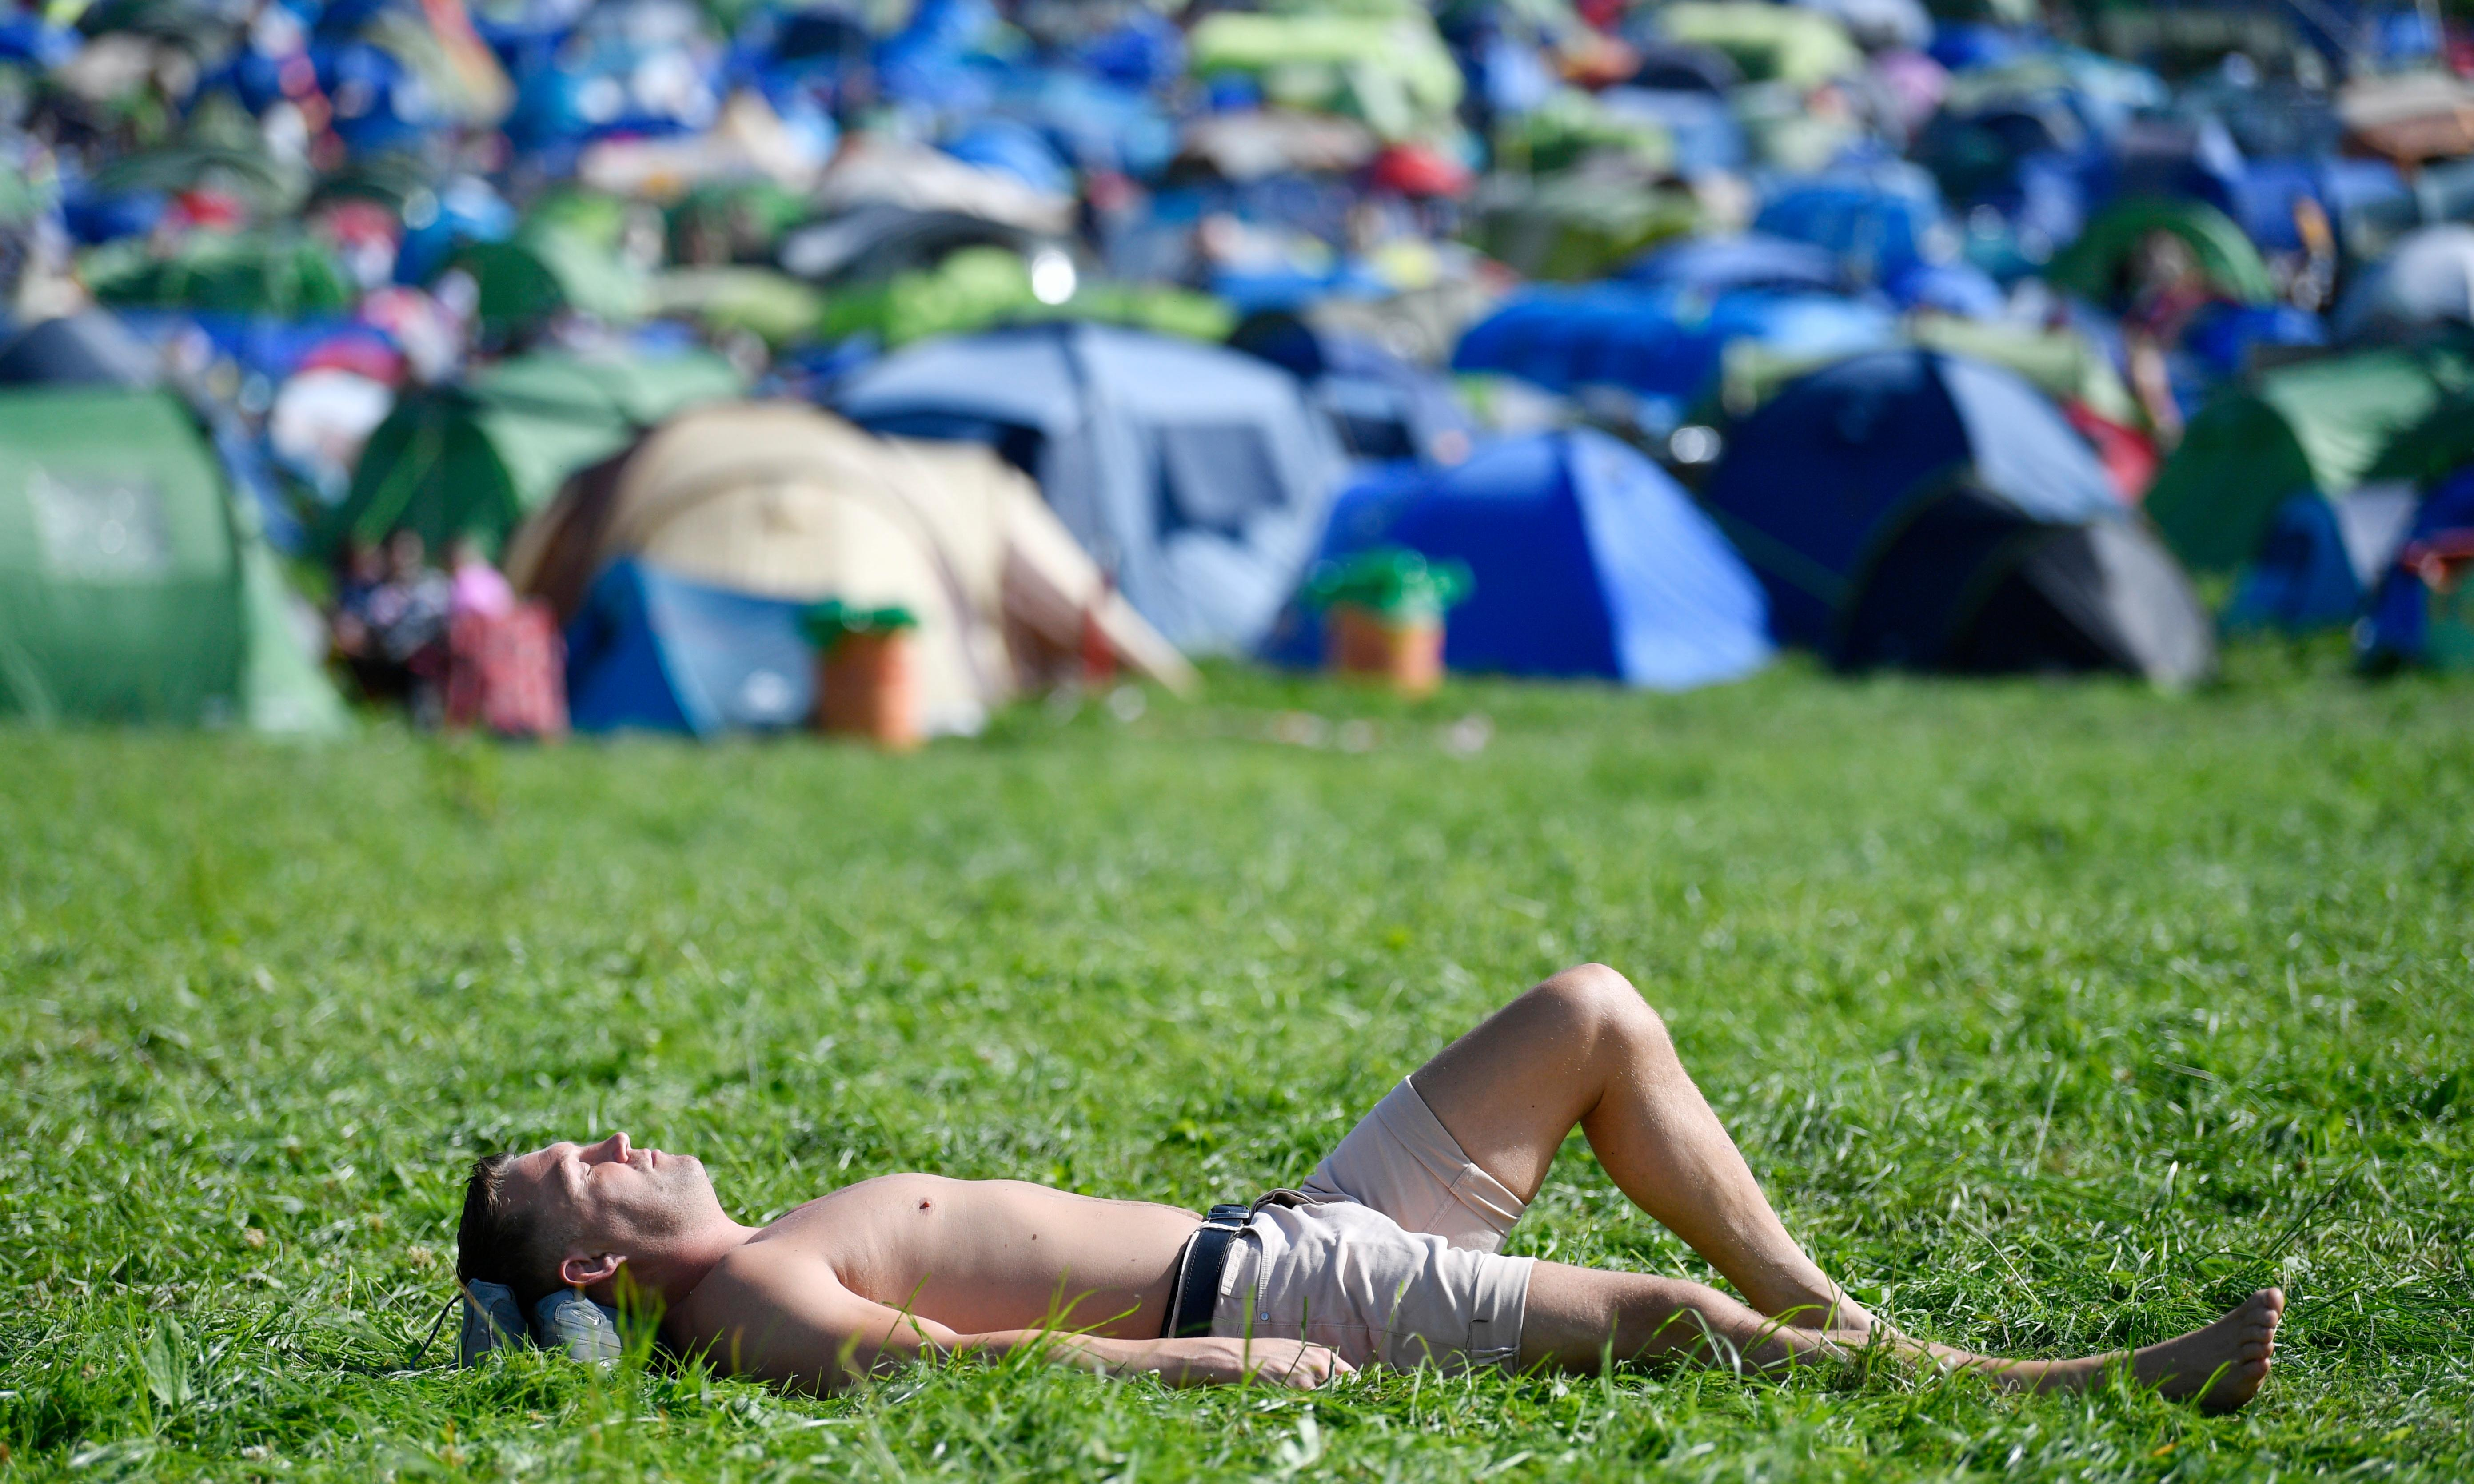 Glastonbury offers free sun cream as weather warms up